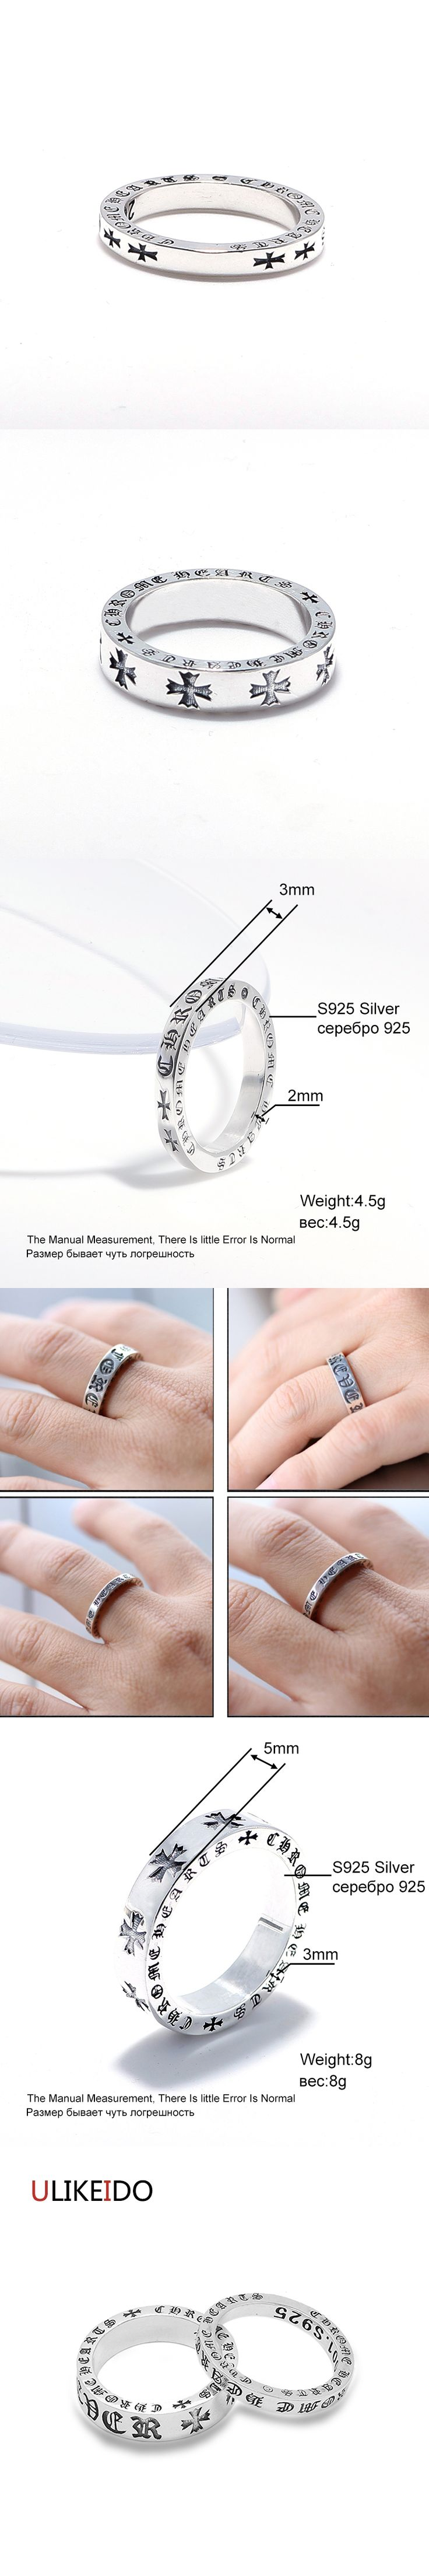 100% Pure 925 Sterling Silver Ring Ch Lovers Jewelry Letter Fashion Mens Signet Rings For Women Special Wedding Christmas Gift